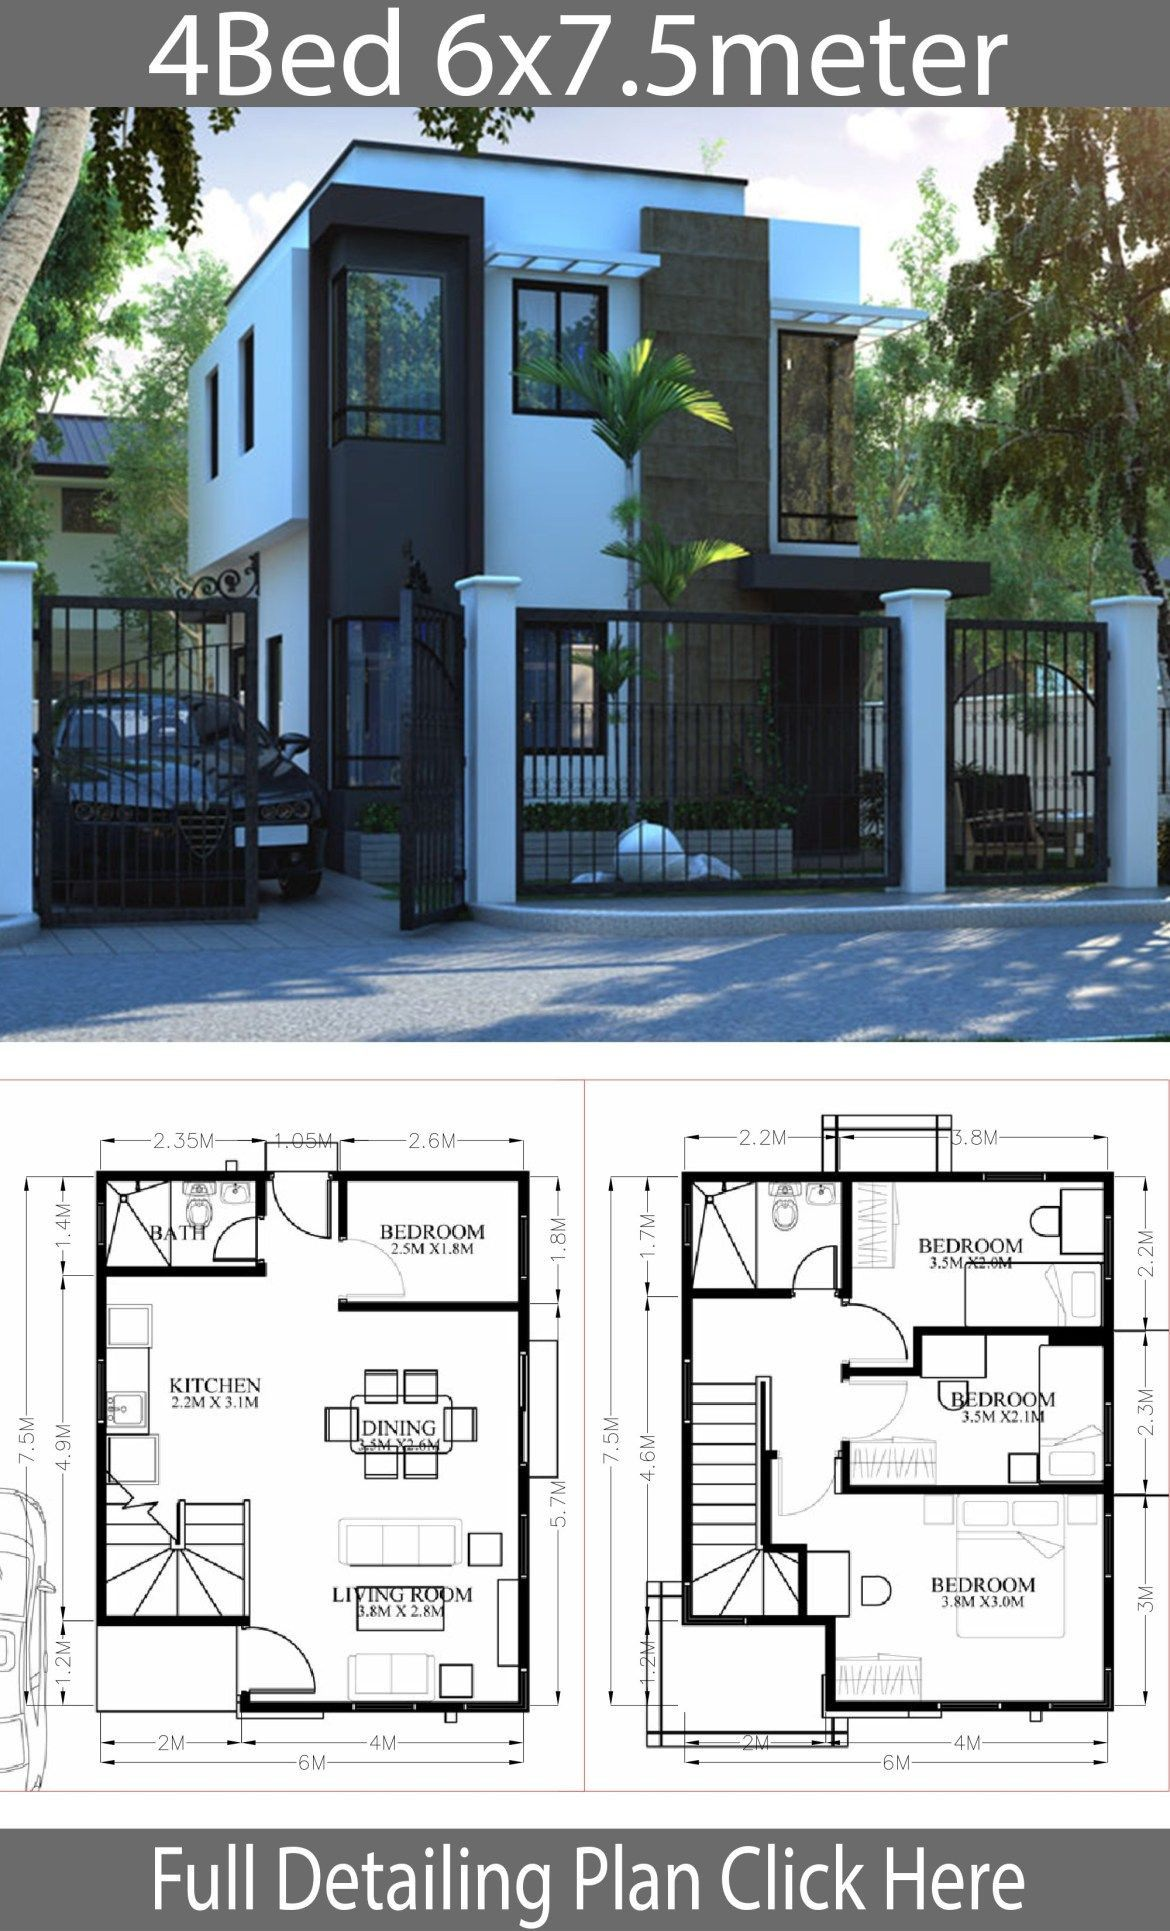 Small House Plans And Designs 2020 Arsitektur Desain Arsitektur Rumah Indah